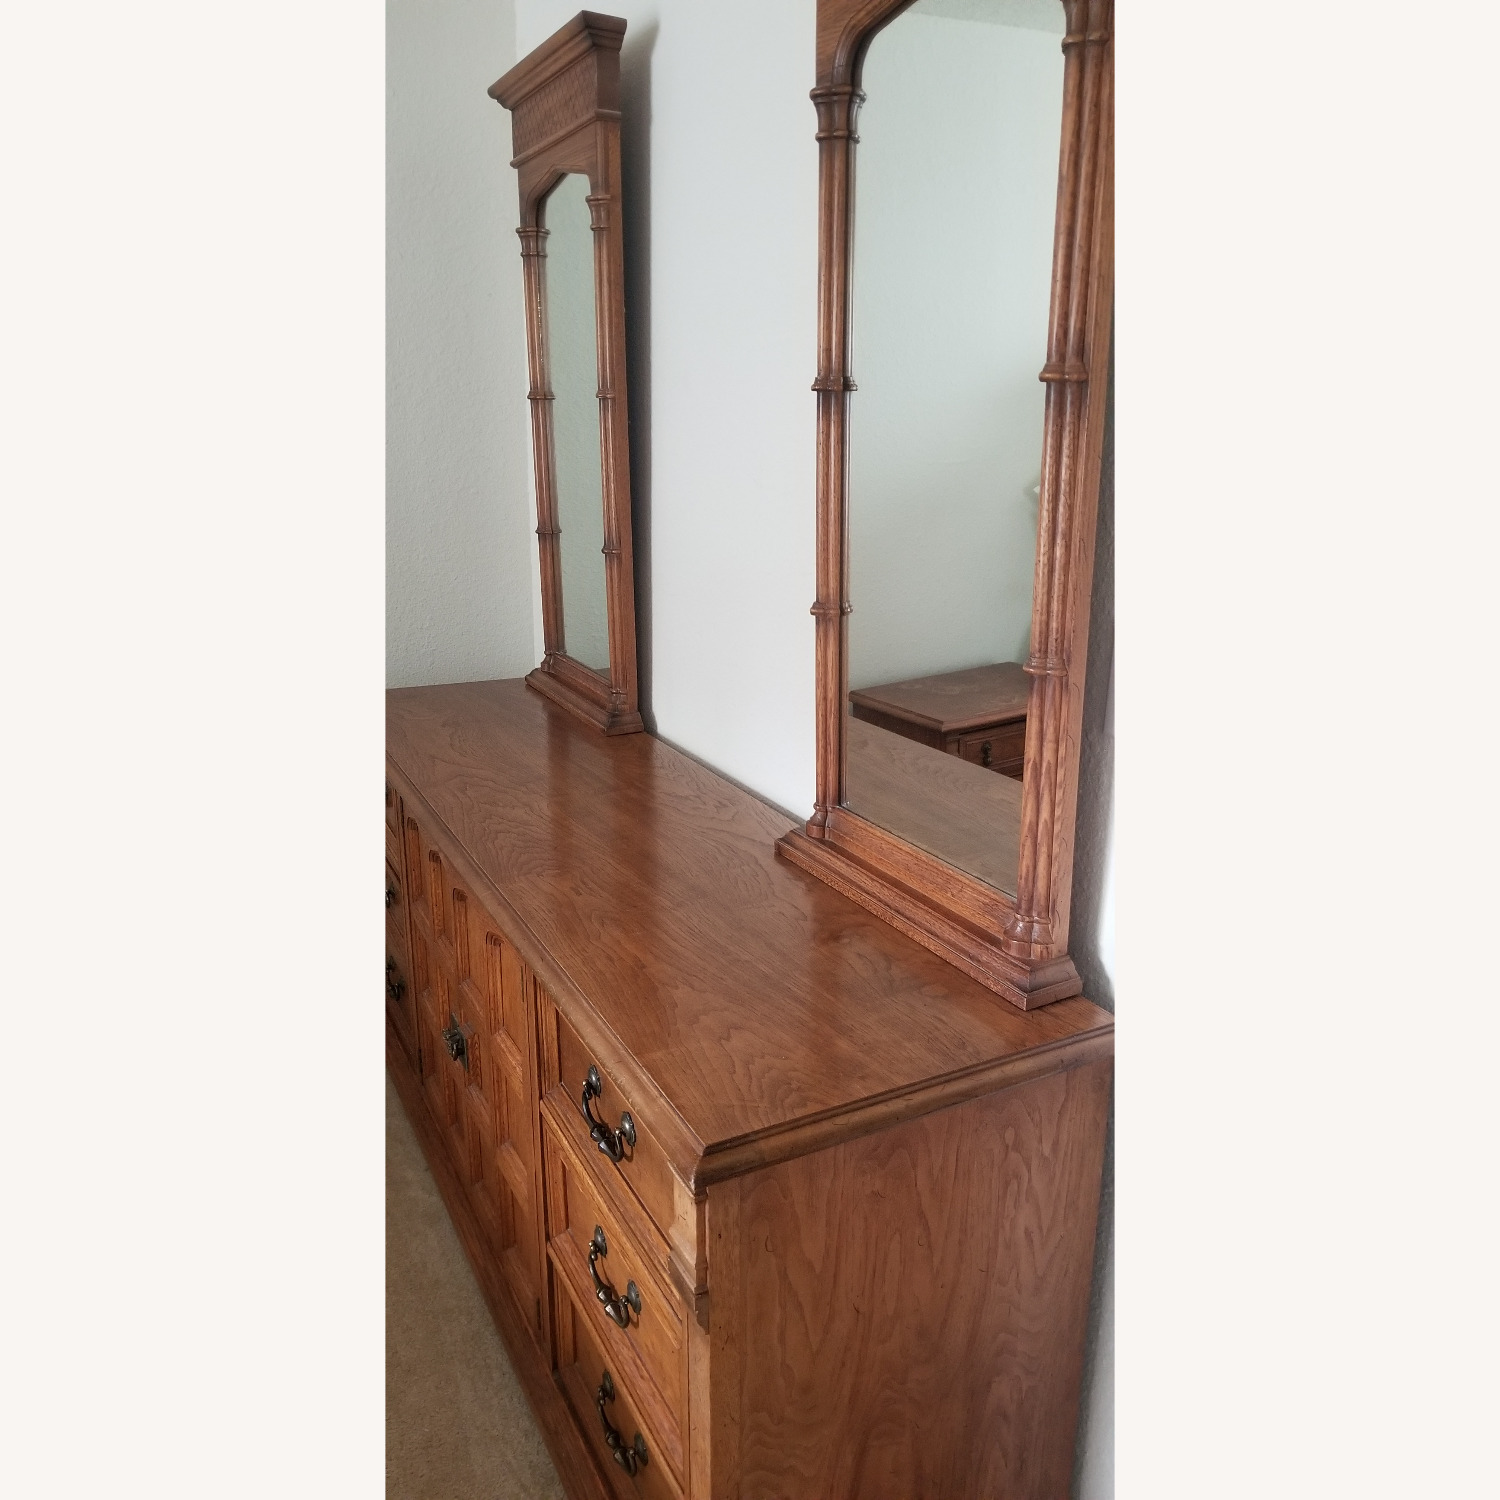 Vintage Drexel Dresser with two Large Mirrors - image-10